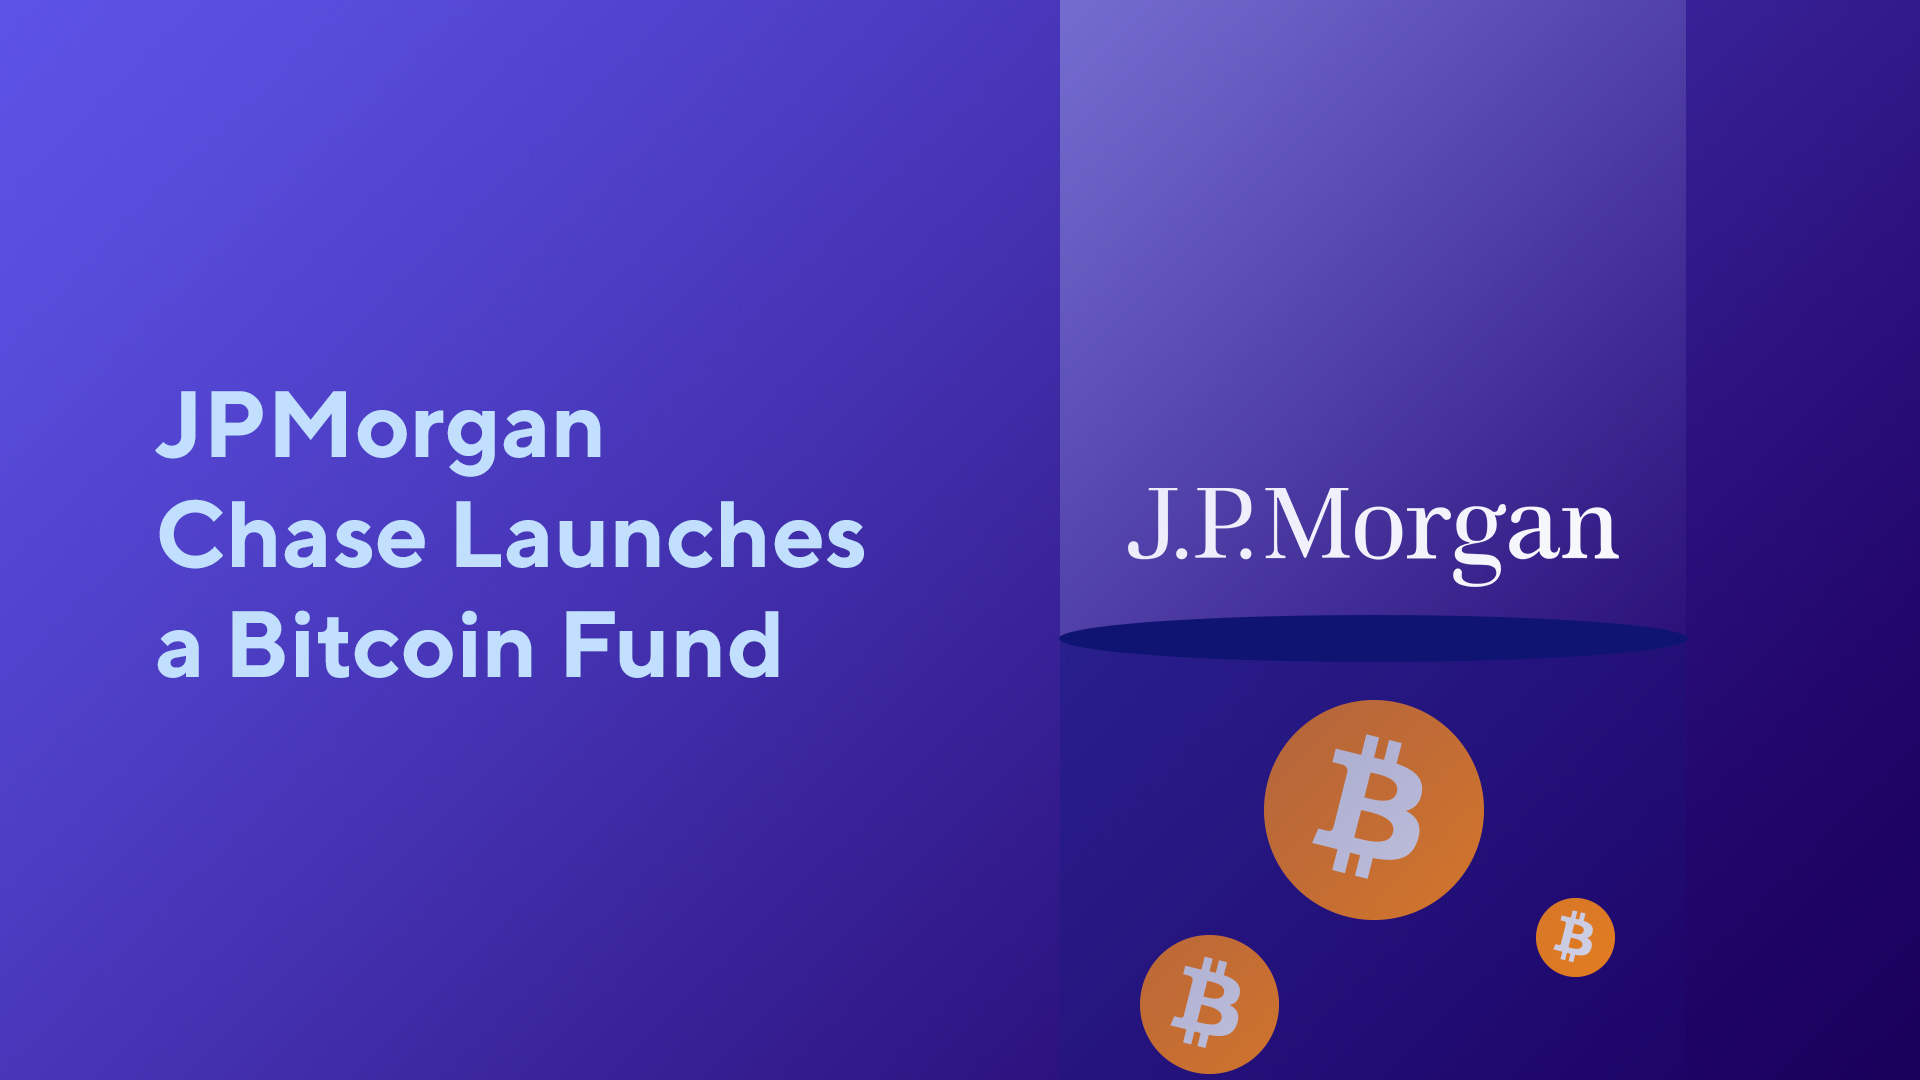 JPMorgan Chase Launches a Bitcoin Fund